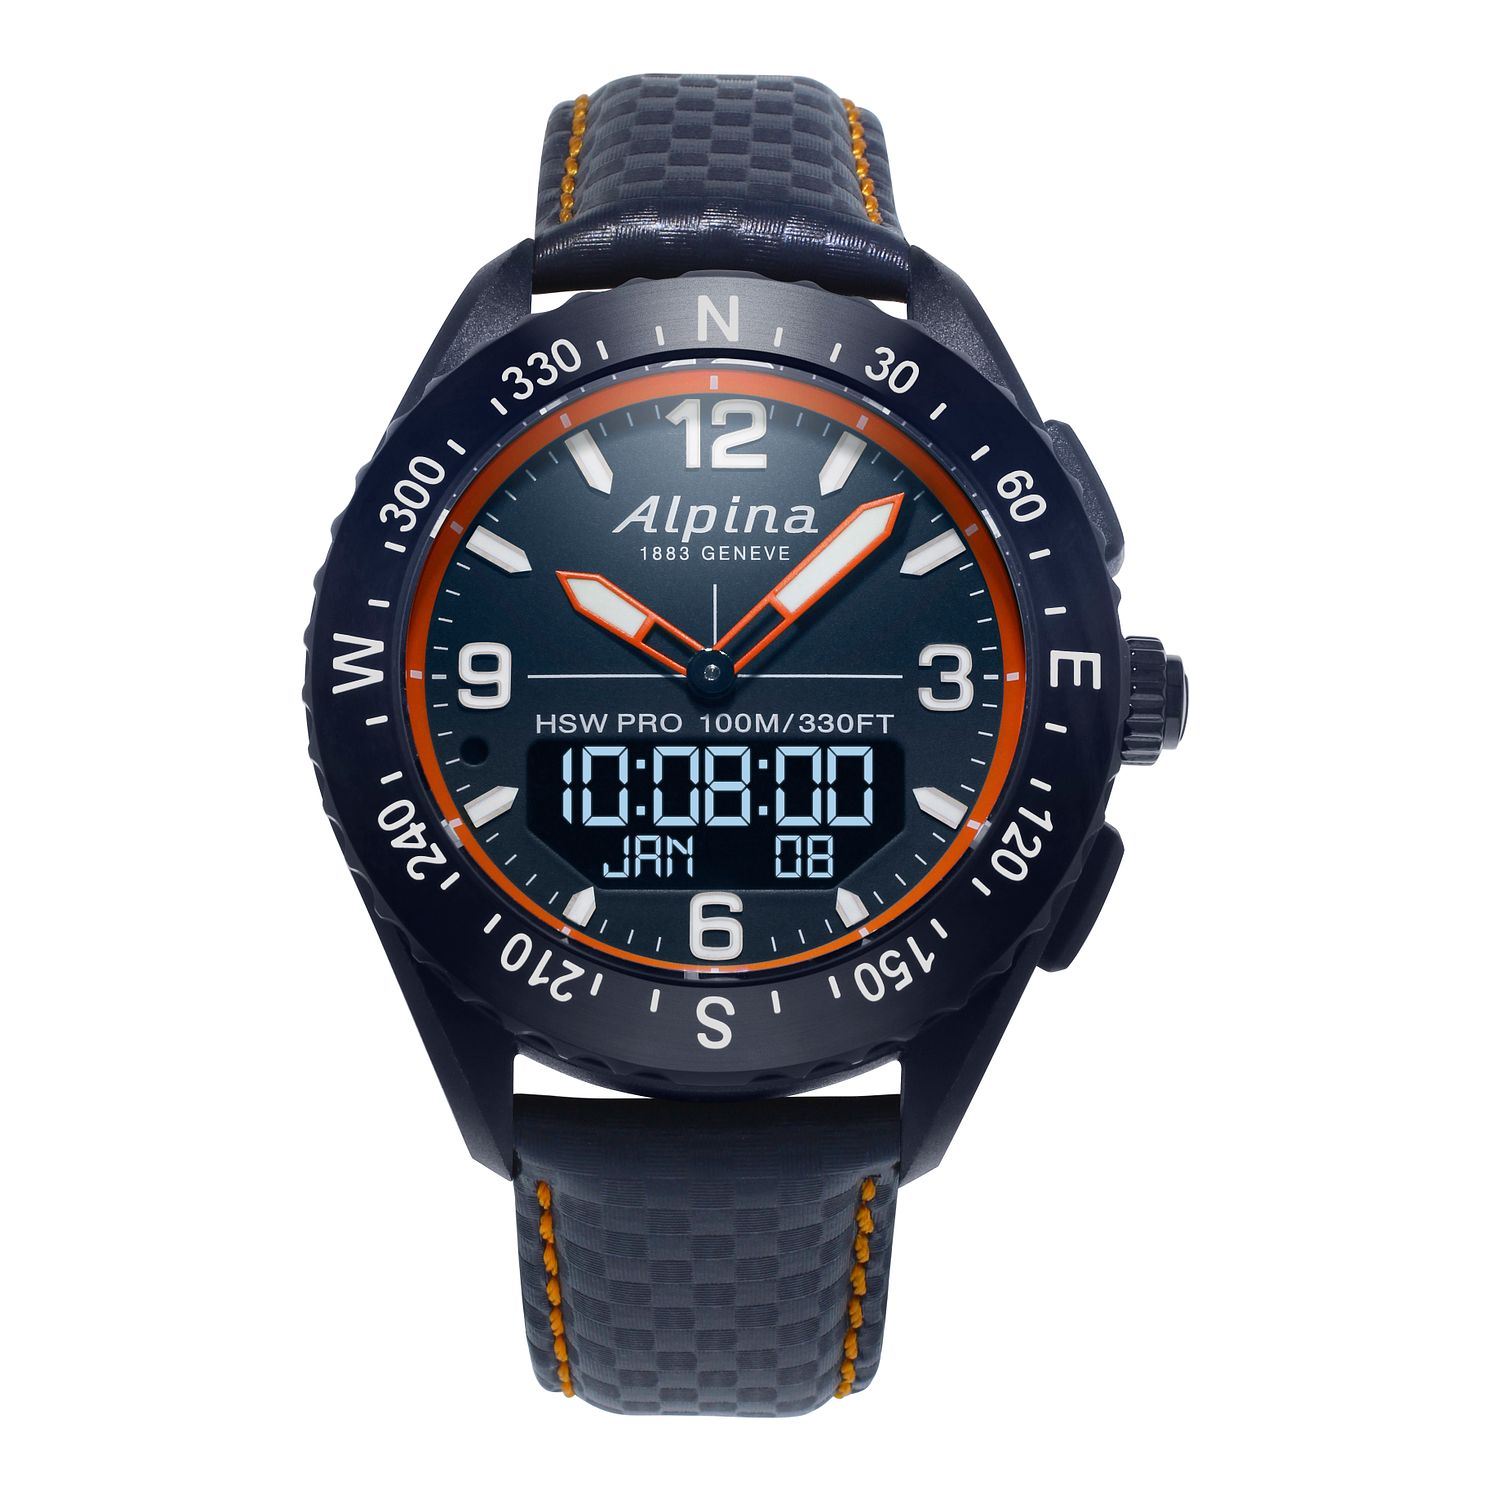 Alpina Alpinerx Men's Navy Blue Leather Strap Smartwatch - Product number 2649330